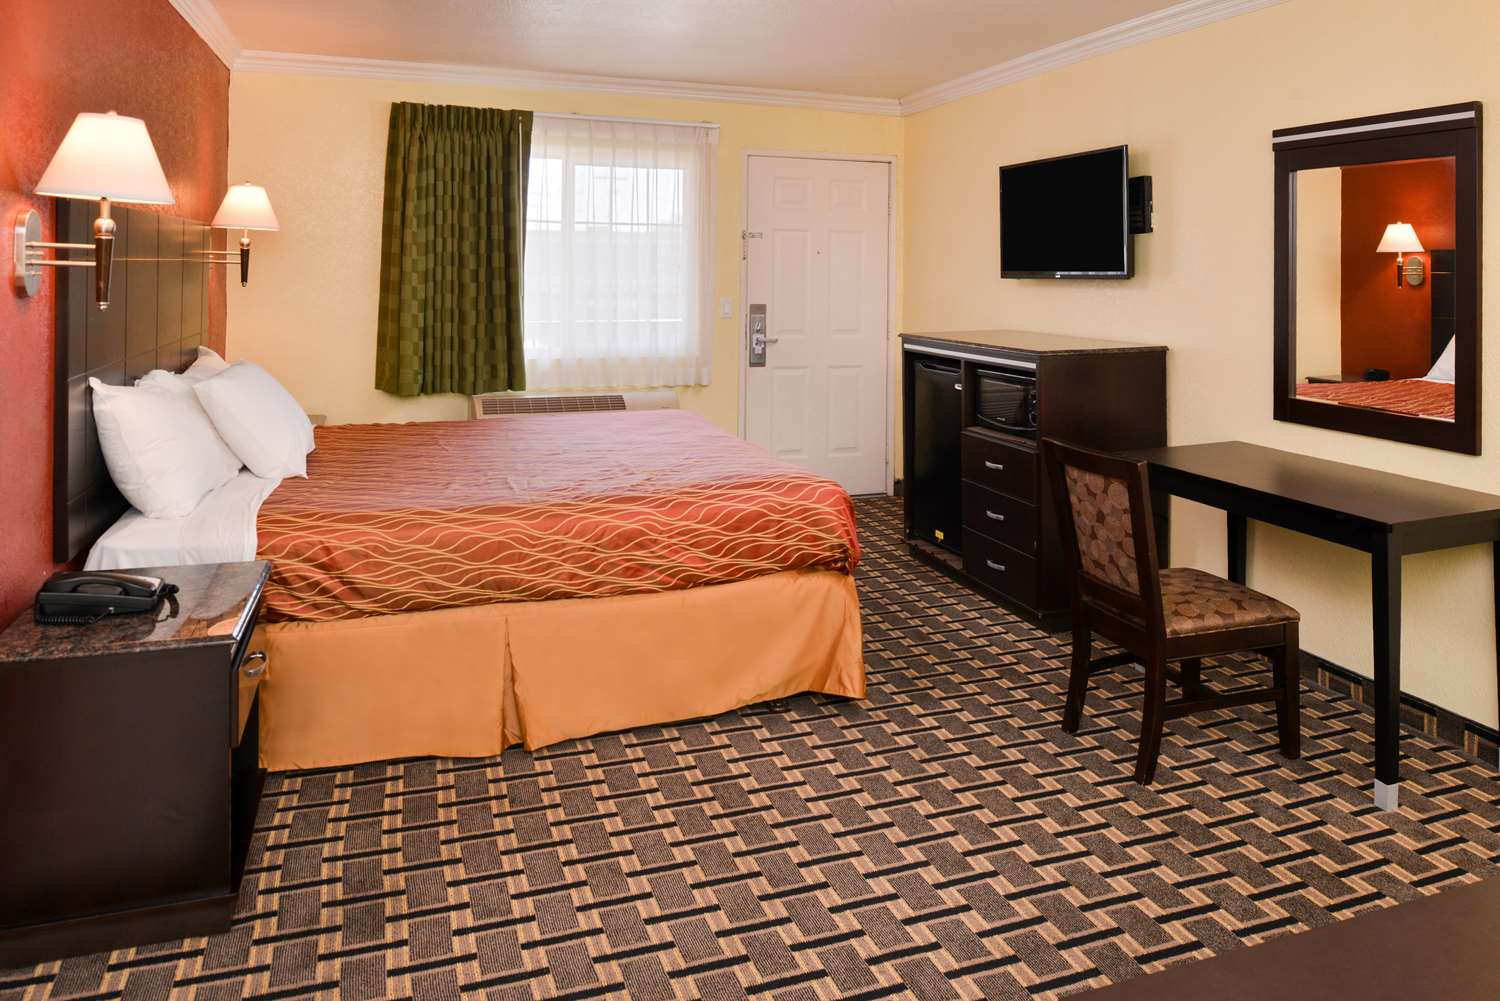 Cheap Hotel Rooms In Rialto Ca